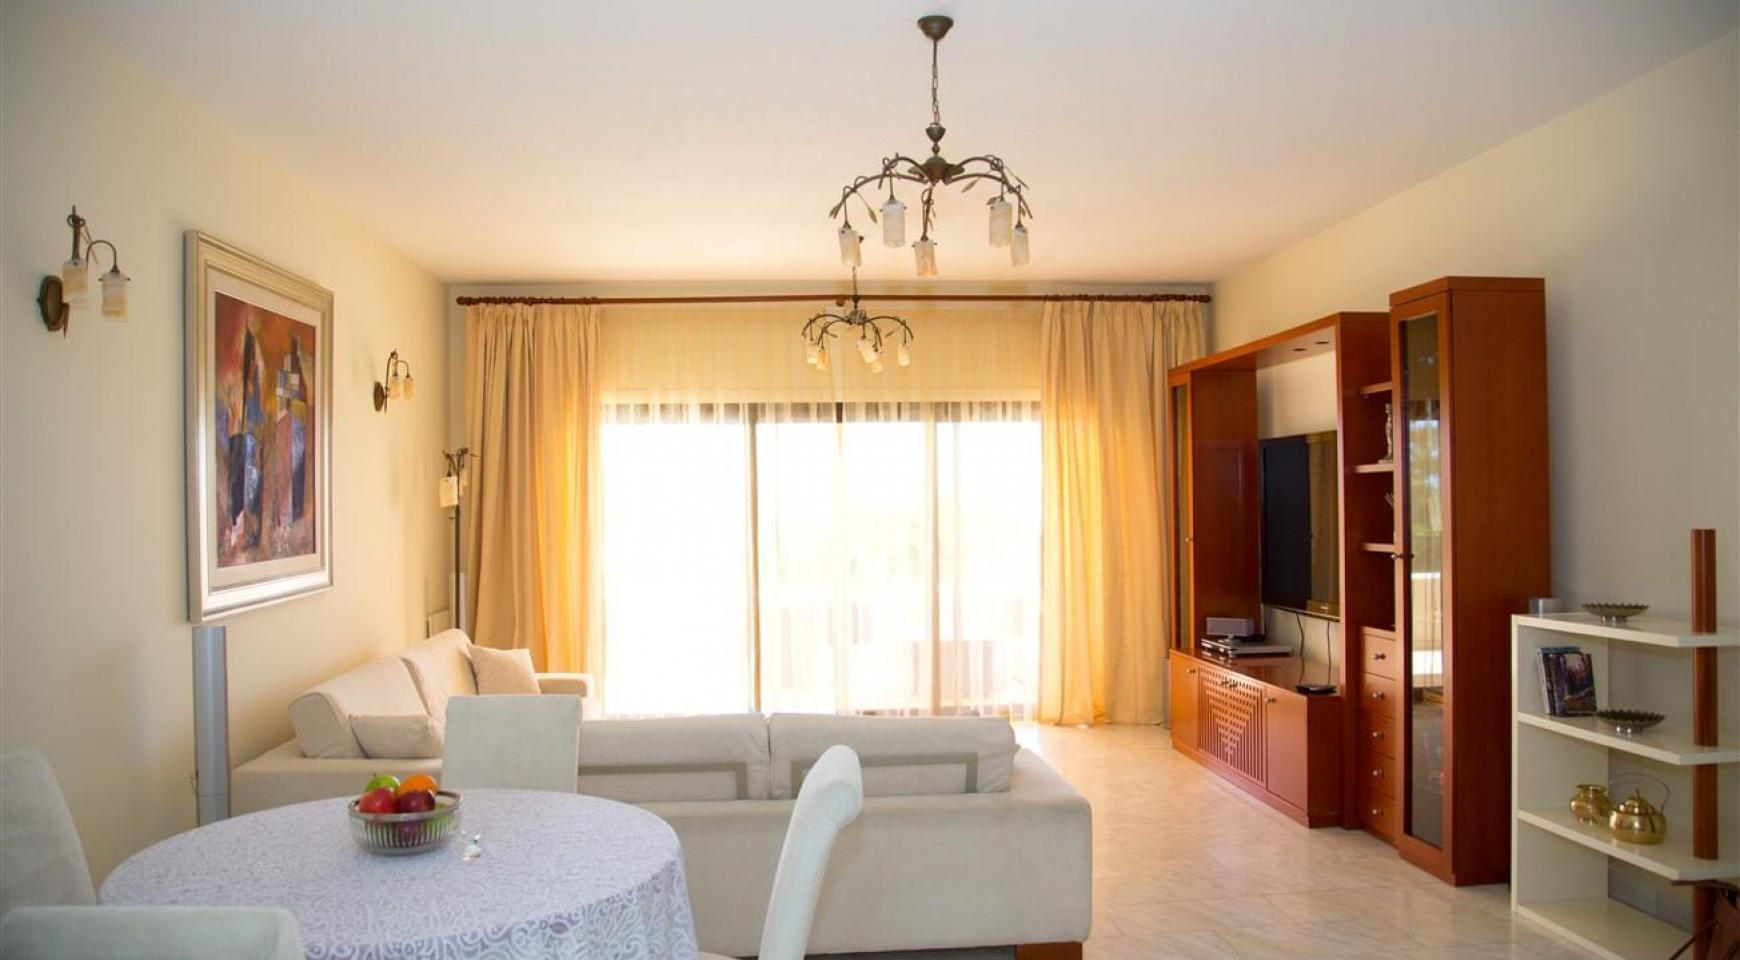 3 Bedroom Apartment in Thera Complex by the Sea - 16